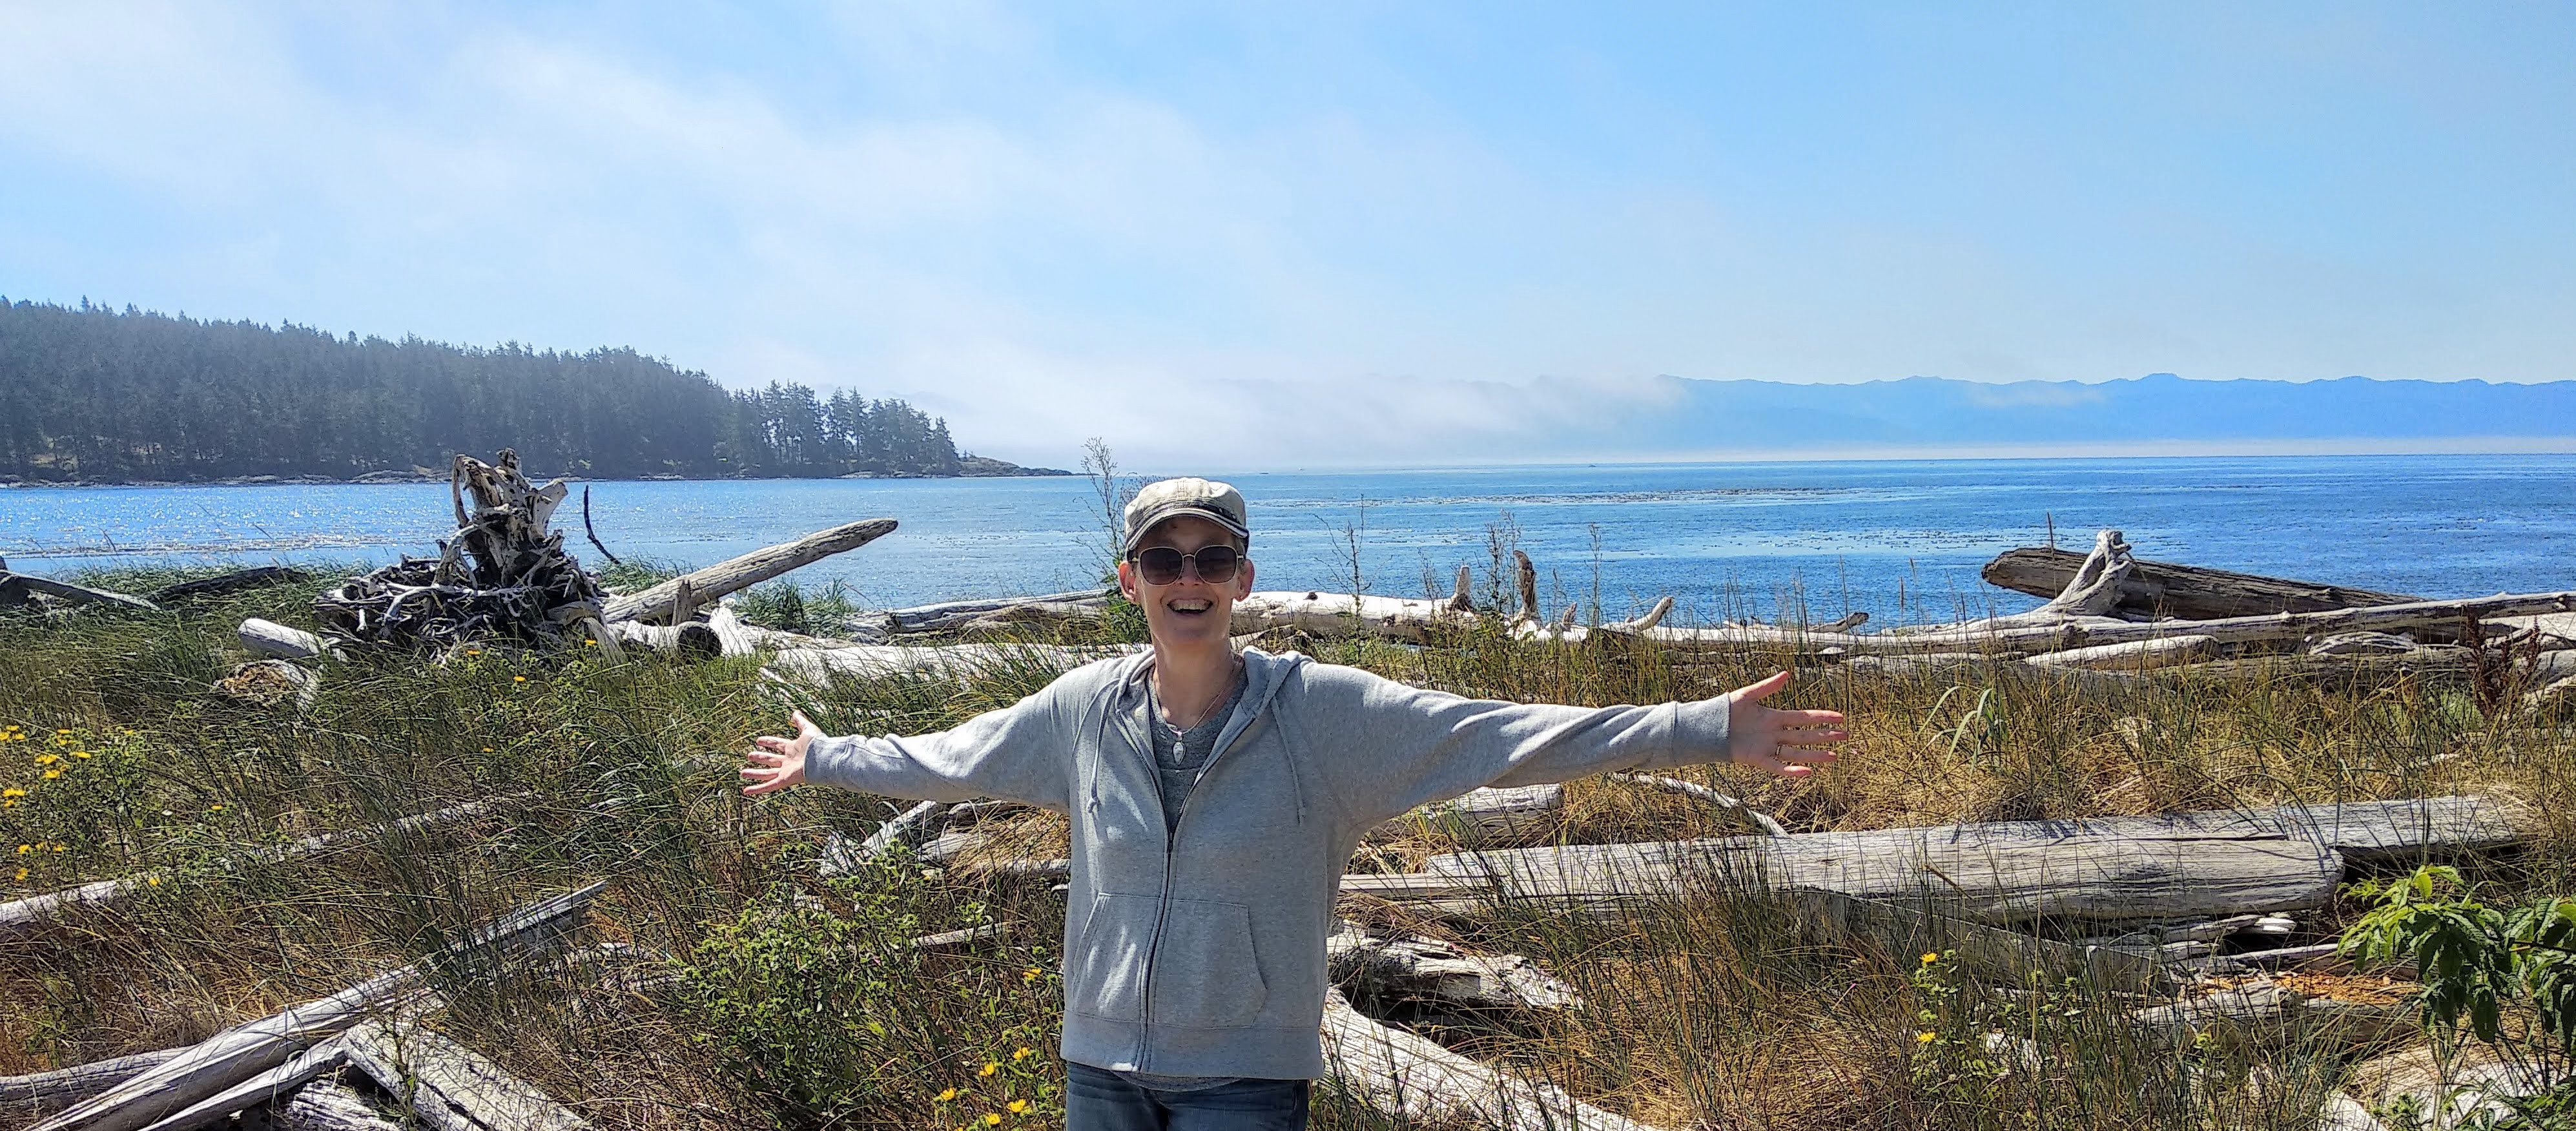 Author, Gill McCulloch on the beach in Sooke, BC, Canada against a background of blue sky, ocean and trees. In the foreground are driftwood logs and shrubs.